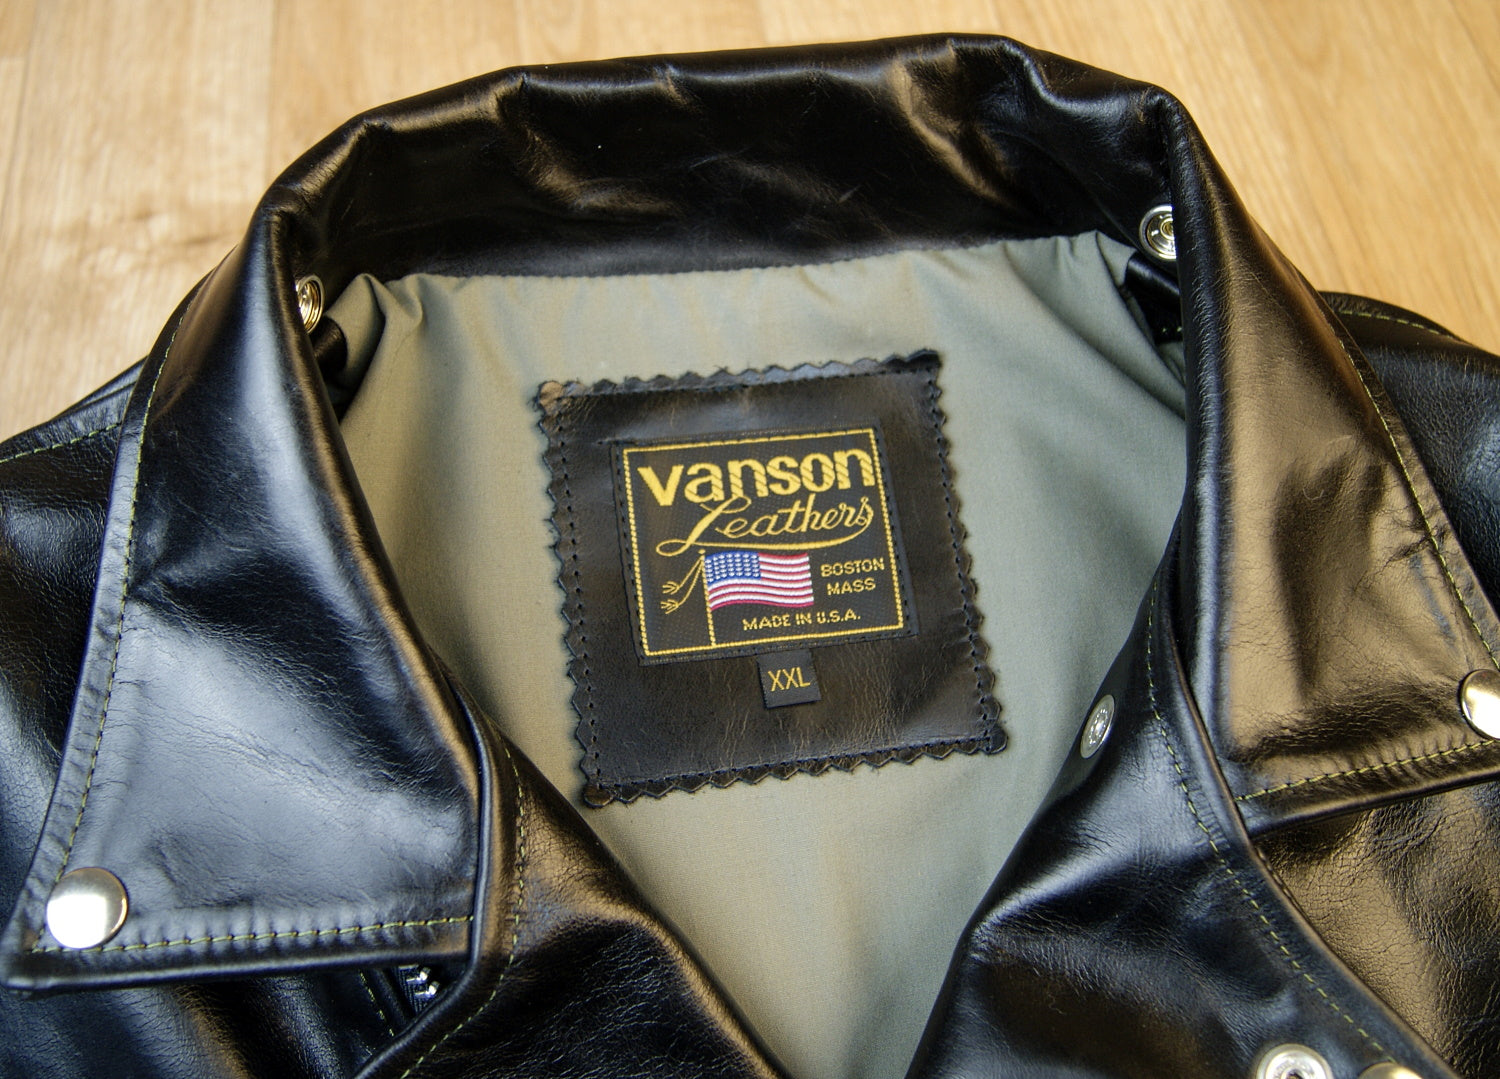 Vanson Daredevil, Black Bainbridge, size XXL